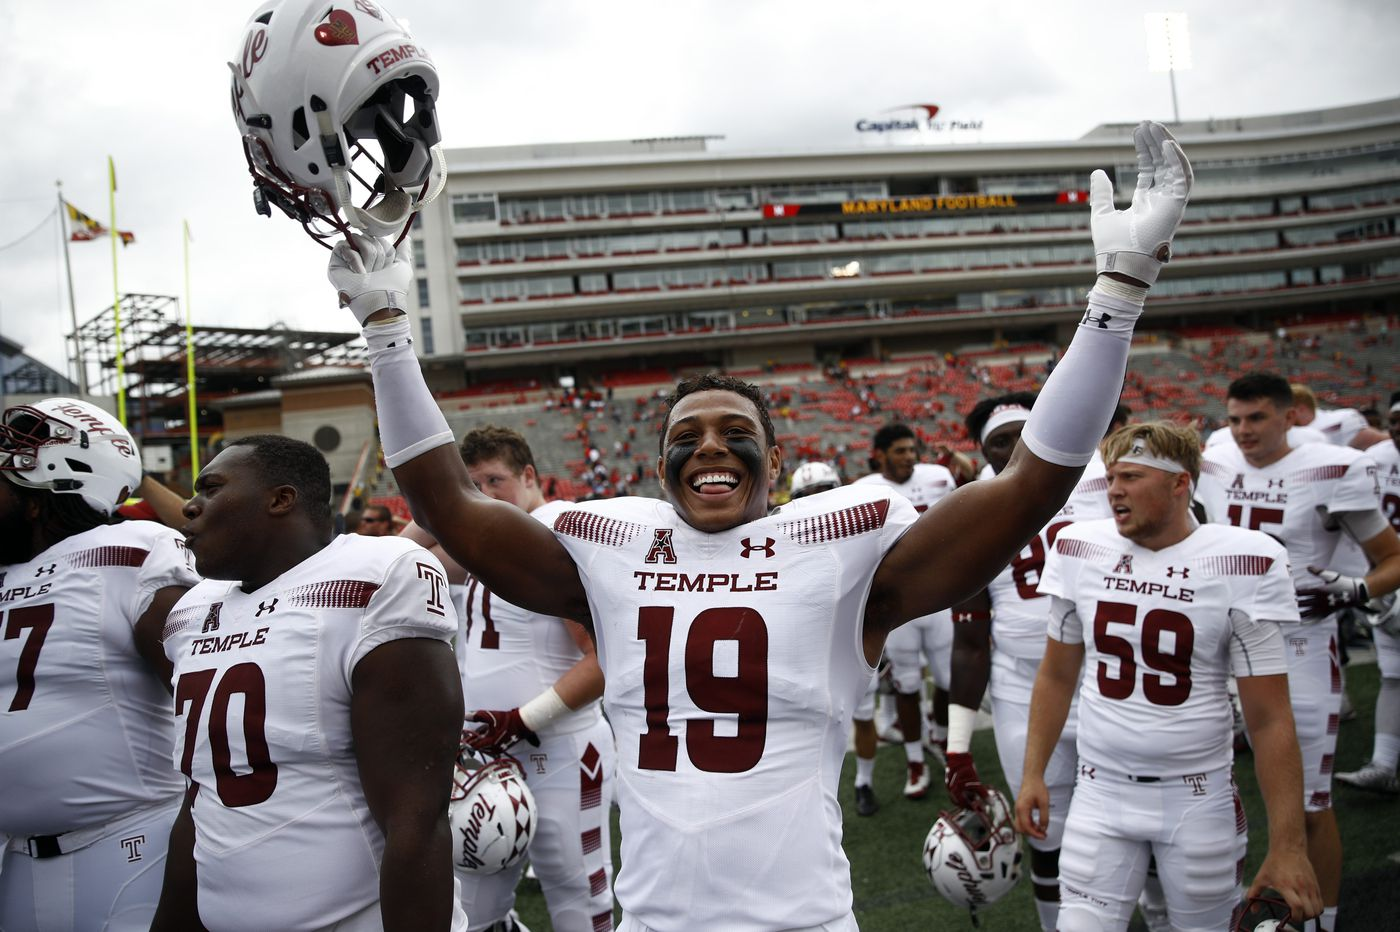 Temple impressive in 35-14 win over Maryland